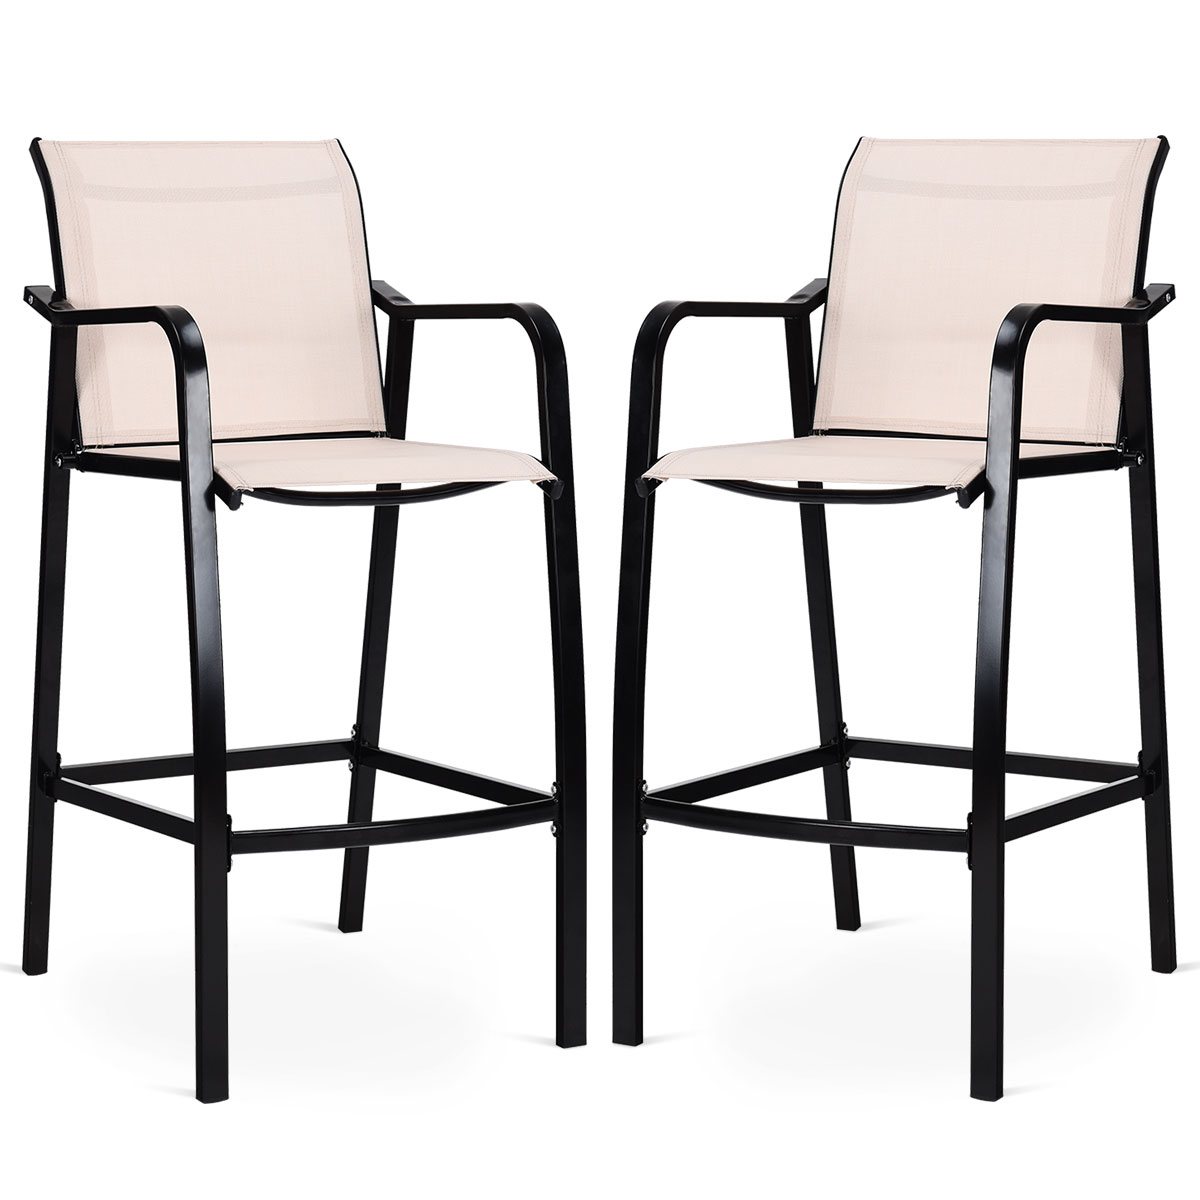 Costway 2 PCS Counter Height Stool Patio Chair Steel Frame Leisure Dining Bar Chair